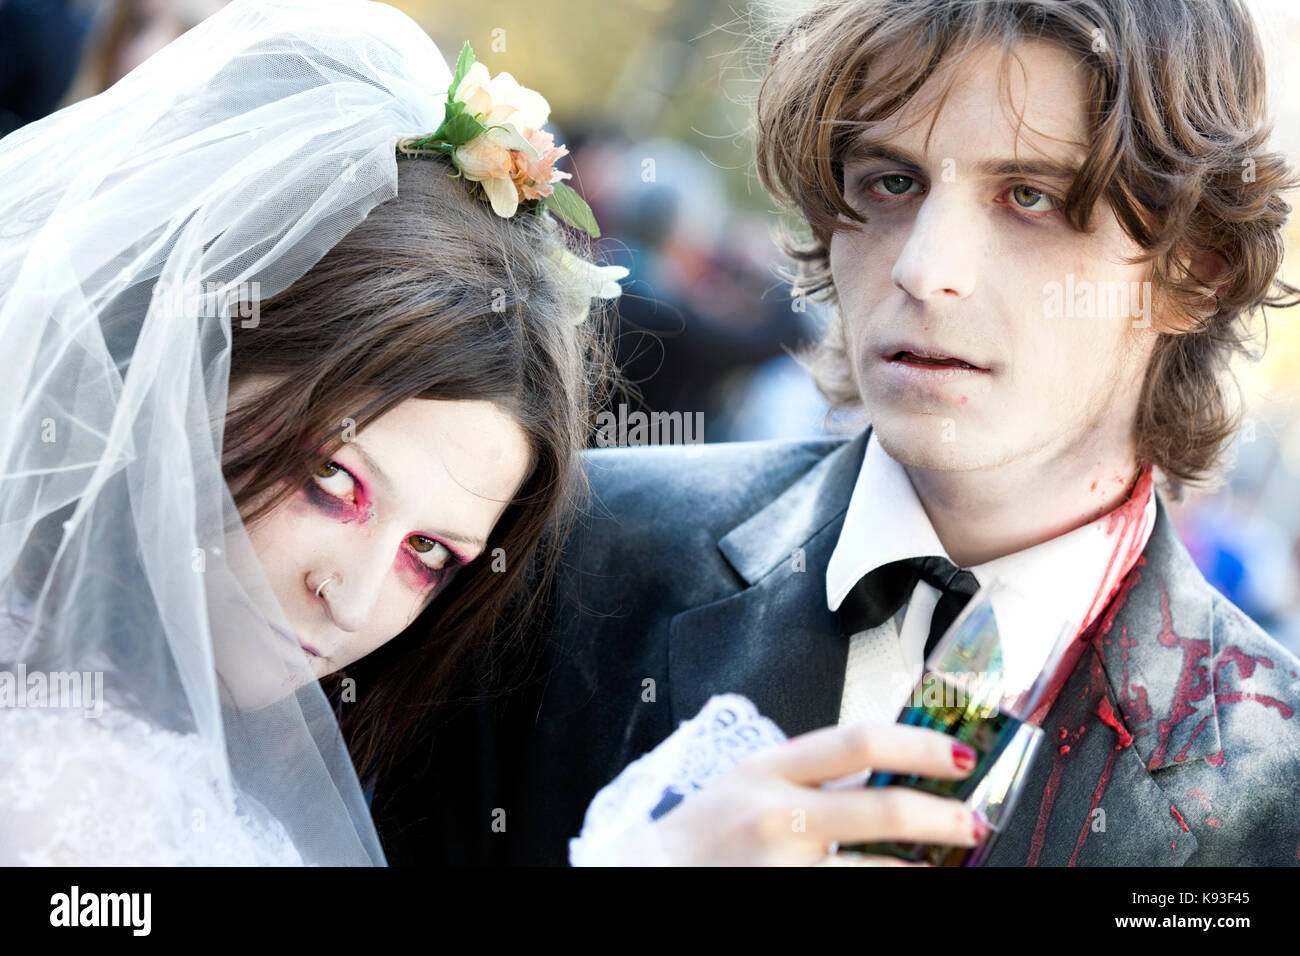 Two people, male and female, dressed as a zombie bride and groom at a zombie wedding - Stock Image